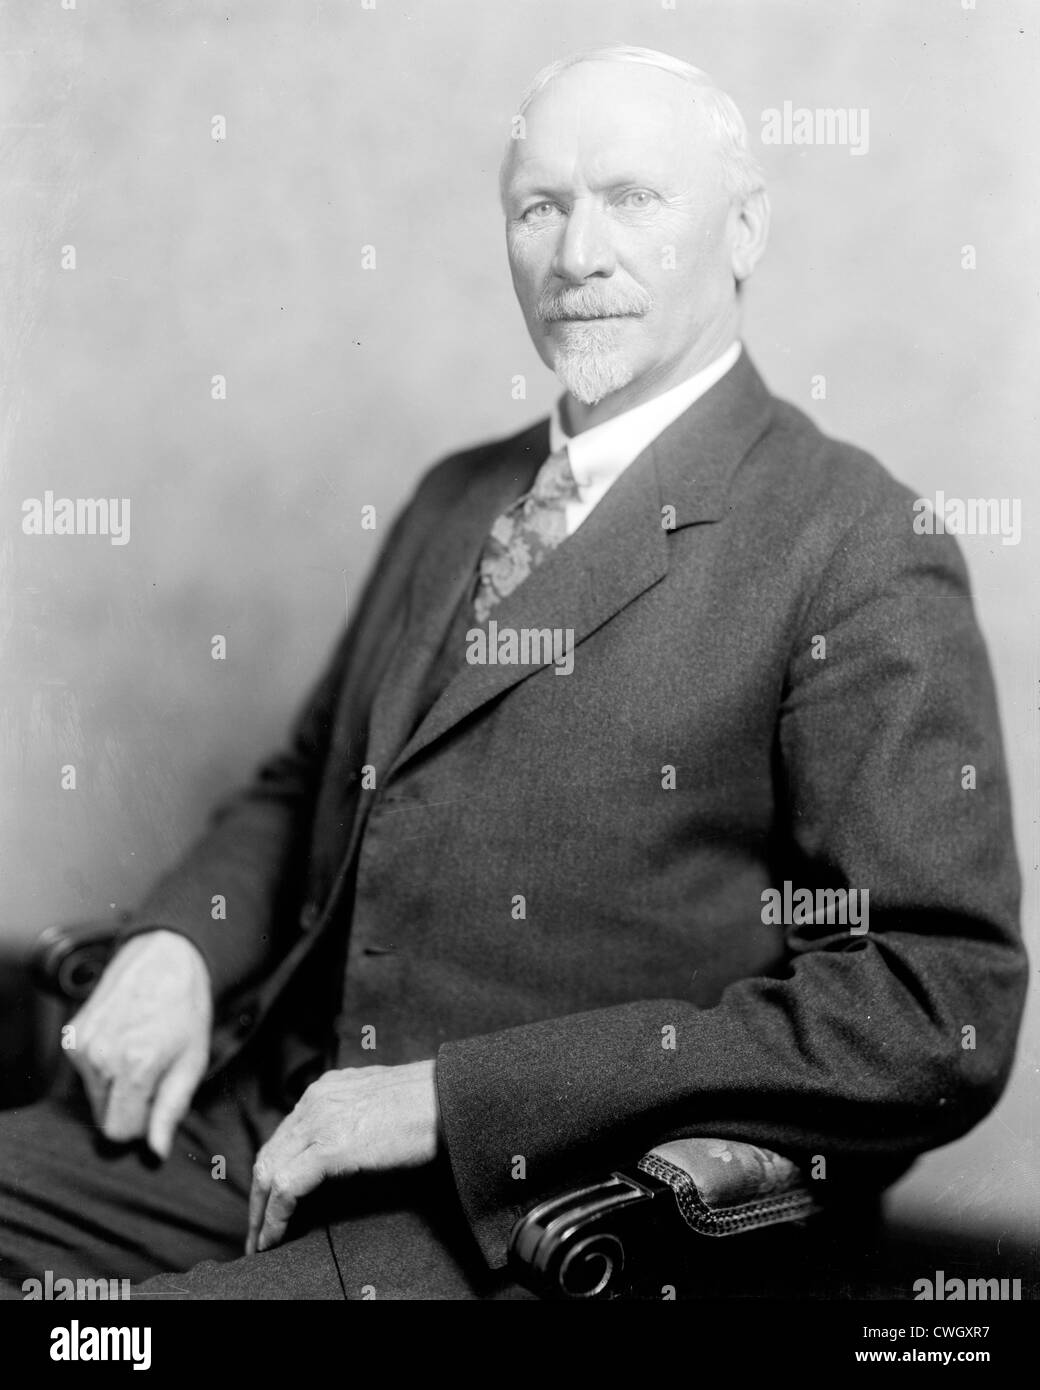 Jan Christiaan Smuts, prominent South African and British Commonwealth statesman, military leader and philosopher. - Stock Image